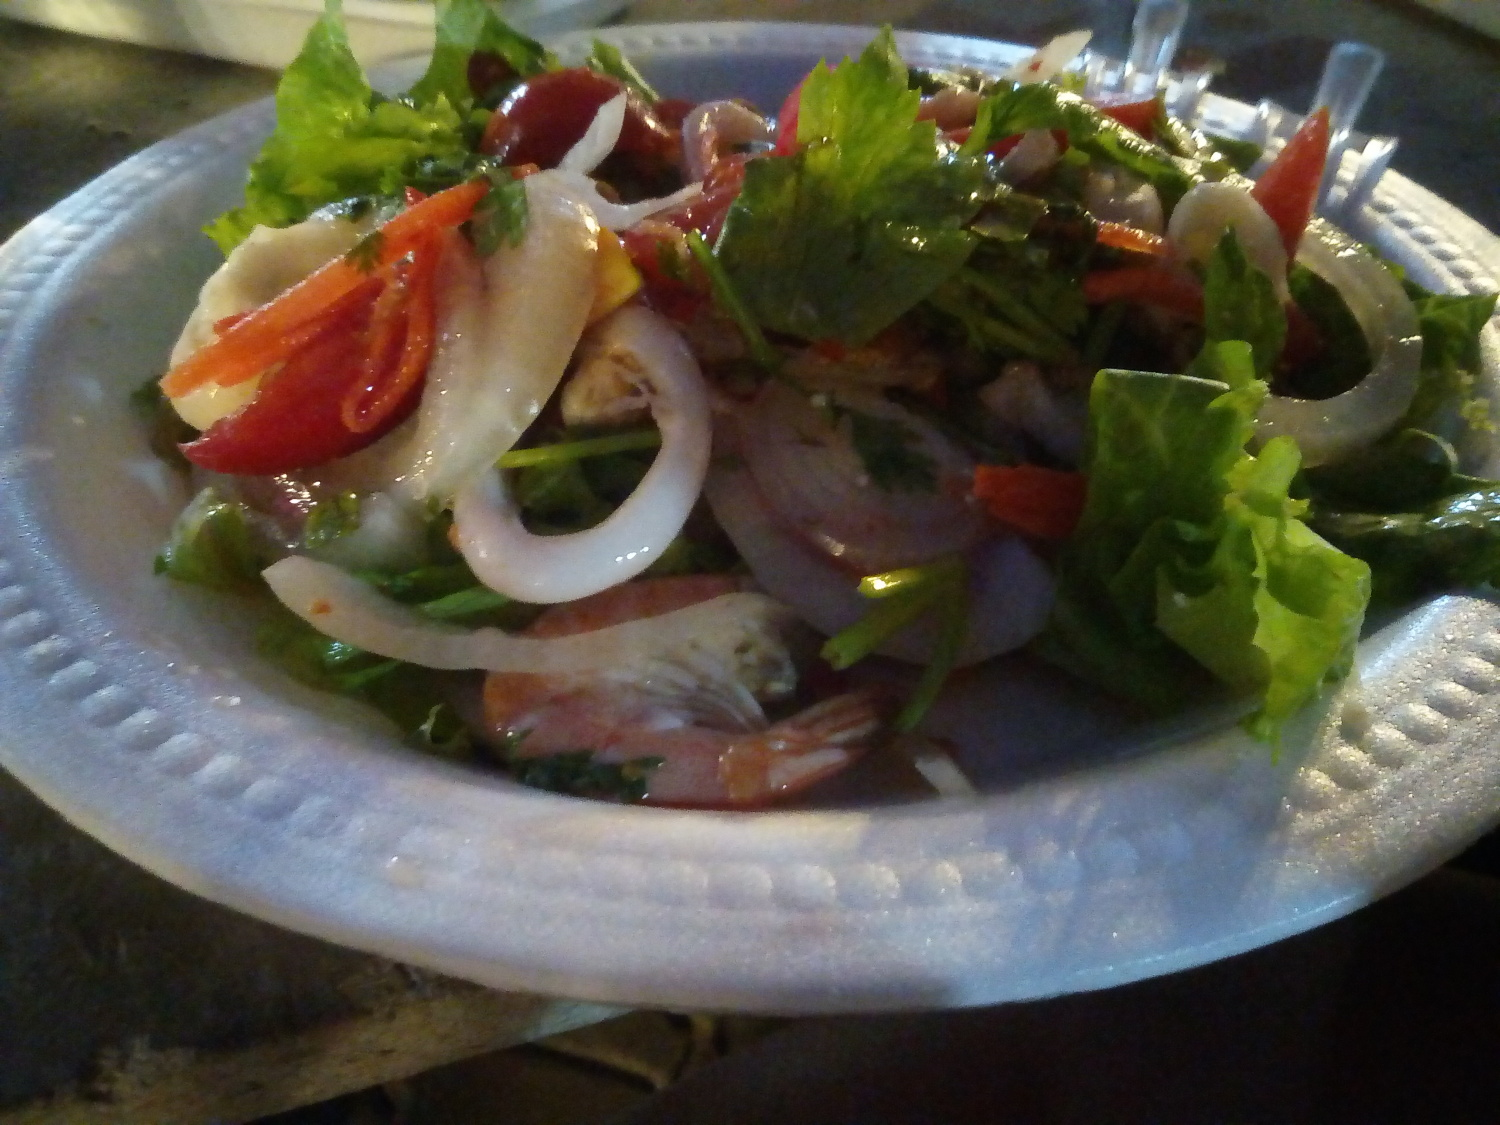 Seafood salad at Saturday Night Market - A Traveler's Guide to Chiang Mai #travel #Thailand